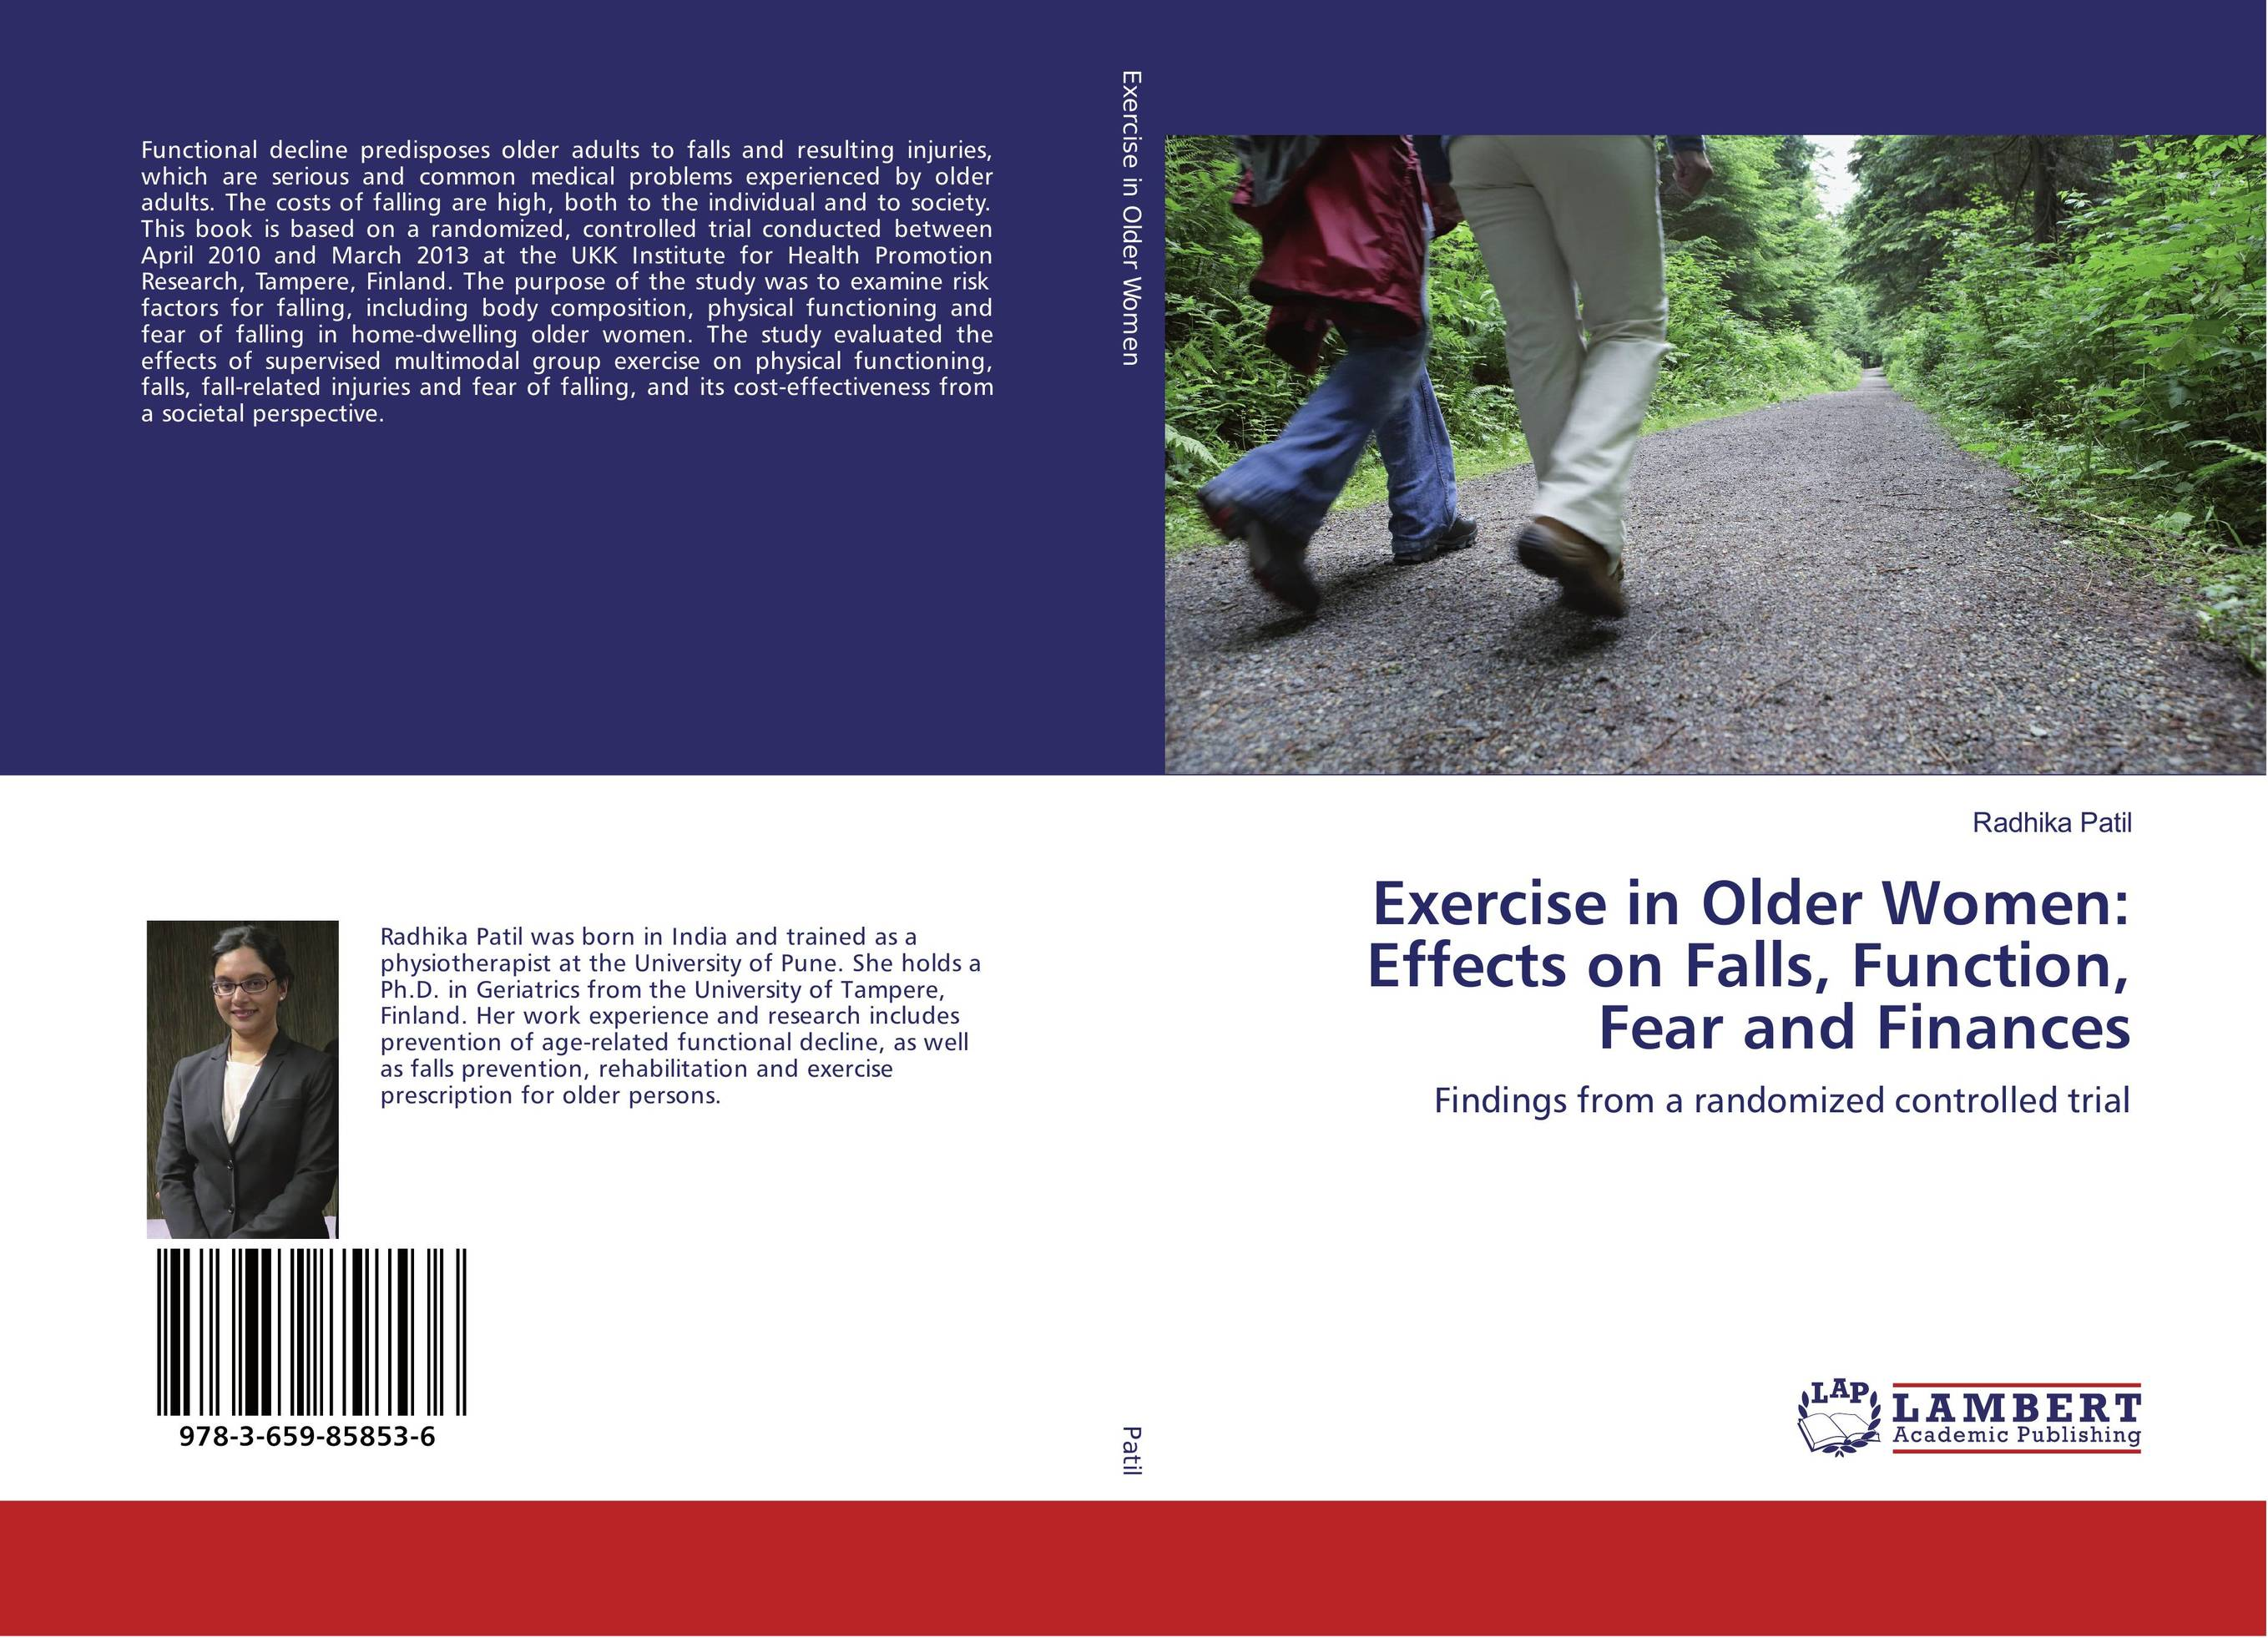 Exercise in Older Women: Effects on Falls, Function, Fear and Finances effects of exercise in different temperatures in type 1 diabetics